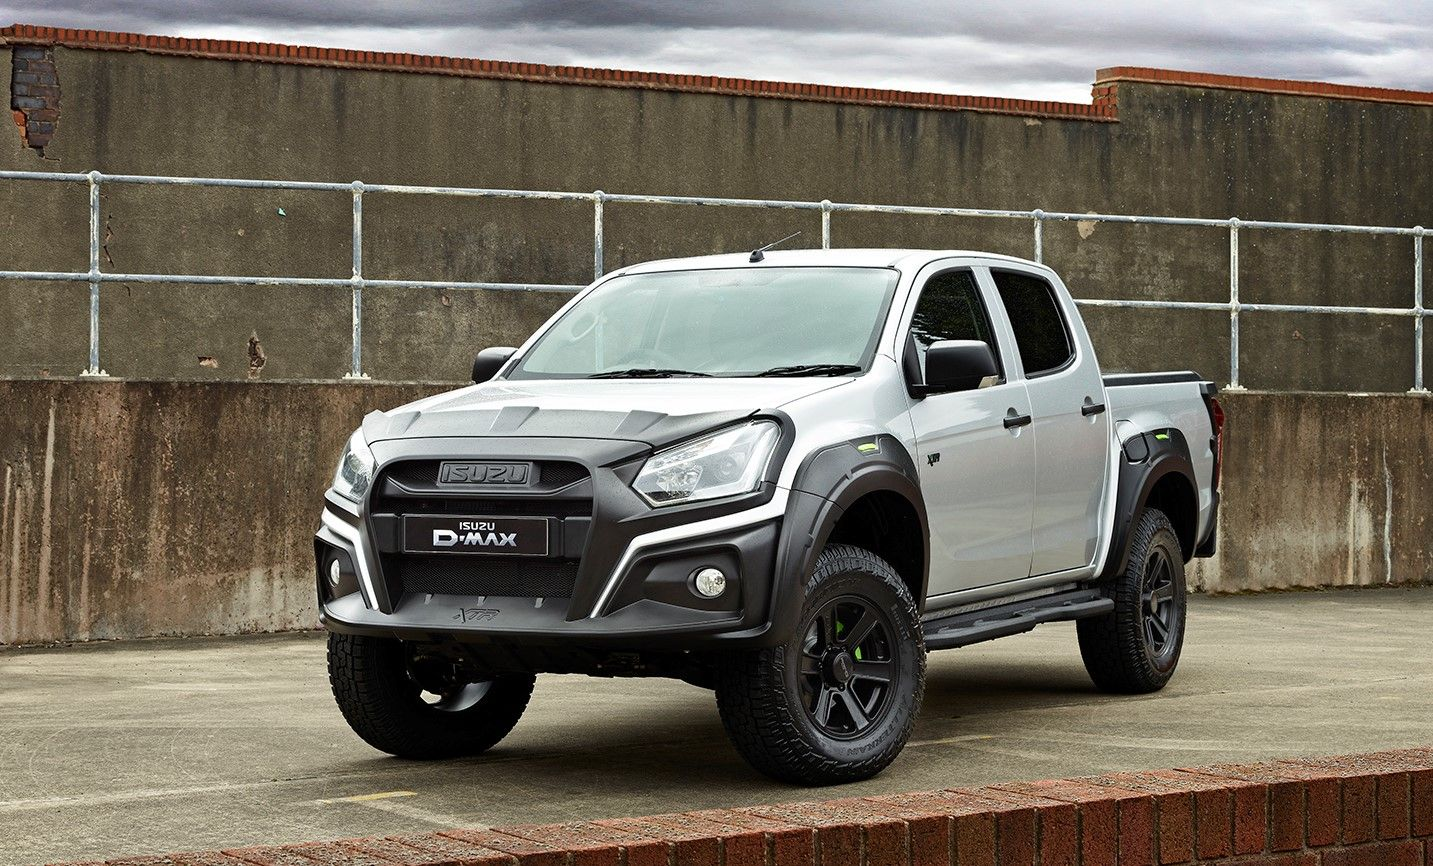 INTRODUCING THE D-MAX XTR...